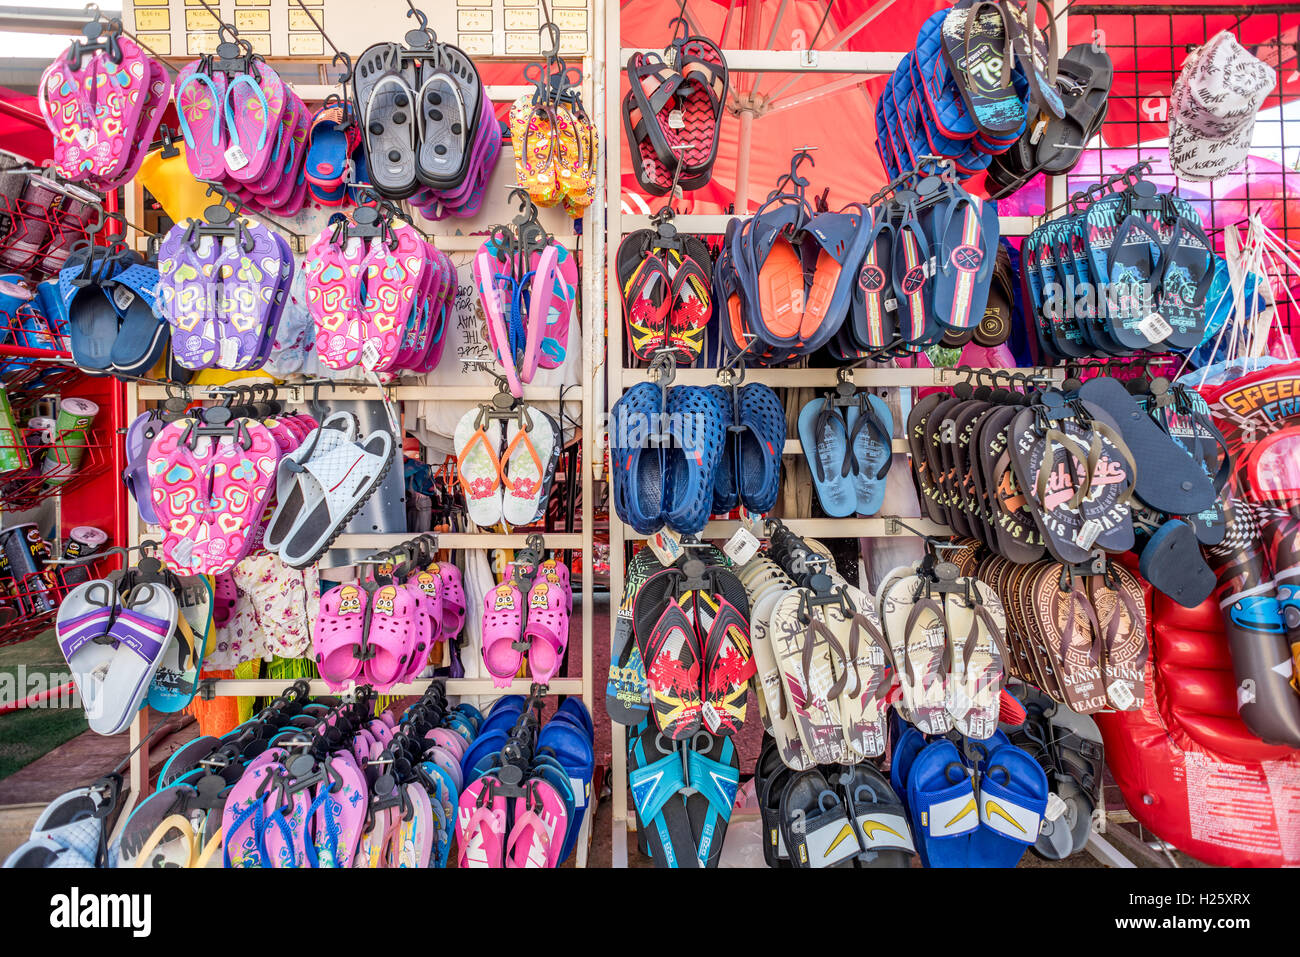 Beach shoes for sale in a Cyprus market - Stock Image